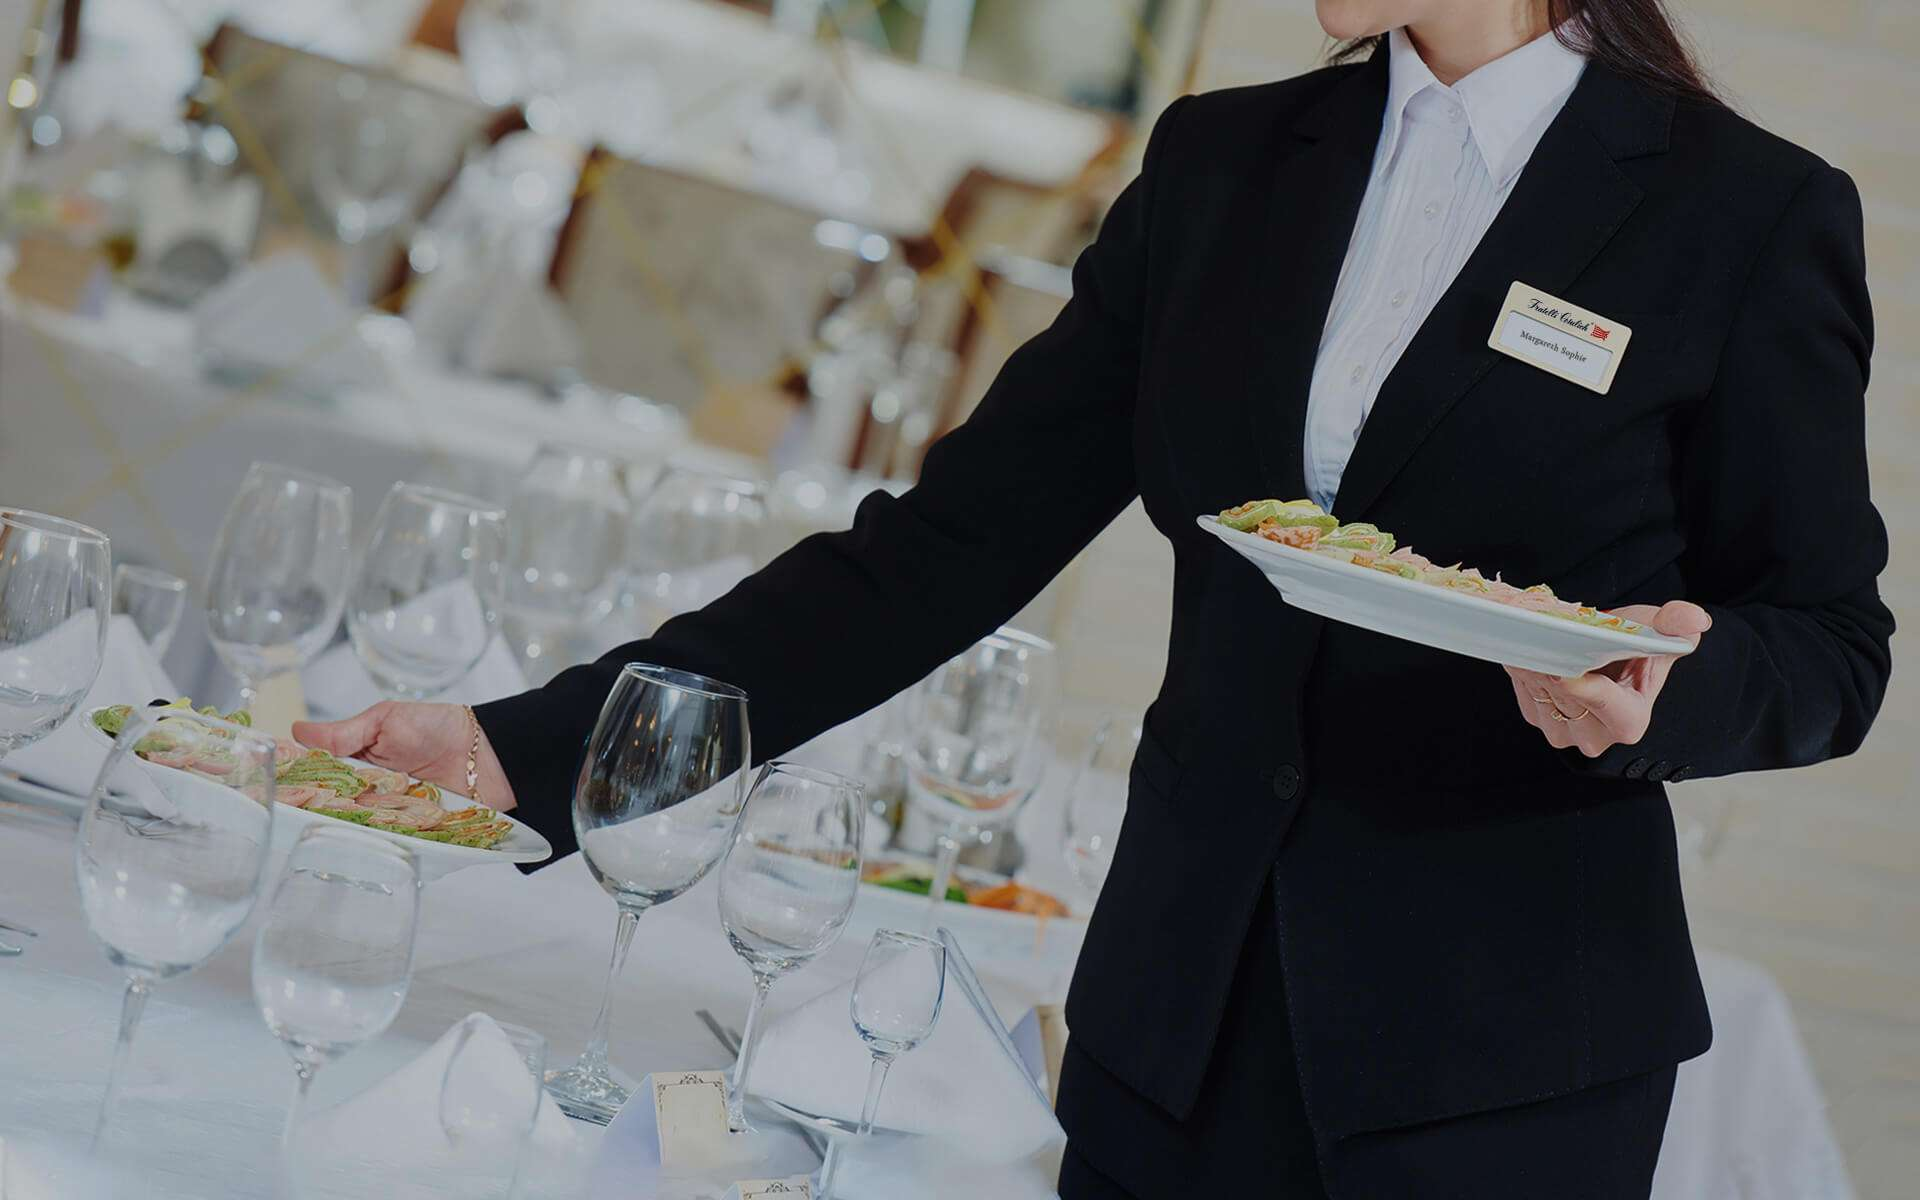 Catering background image